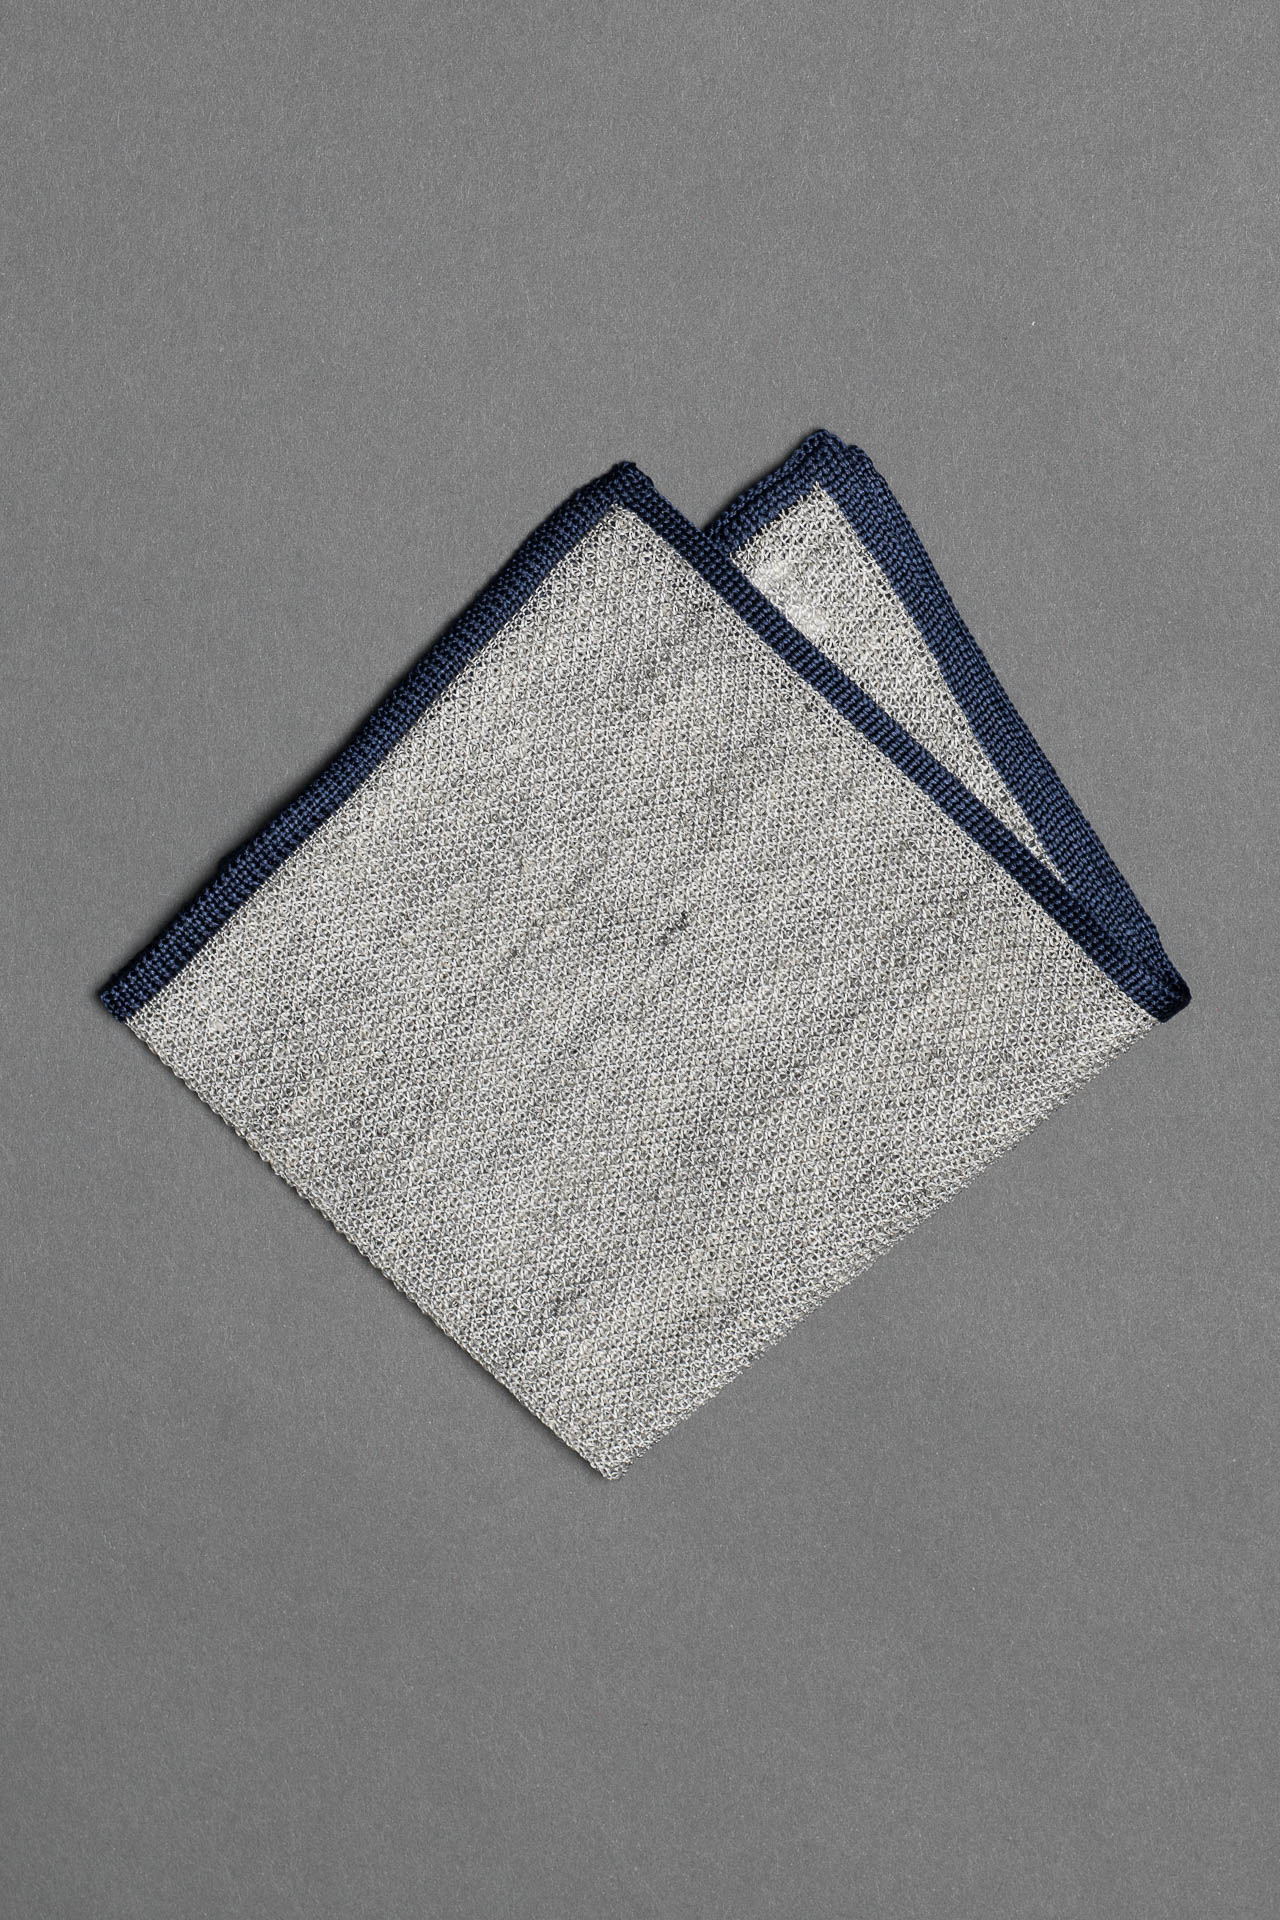 7. Cotton Linen - Pocket Square